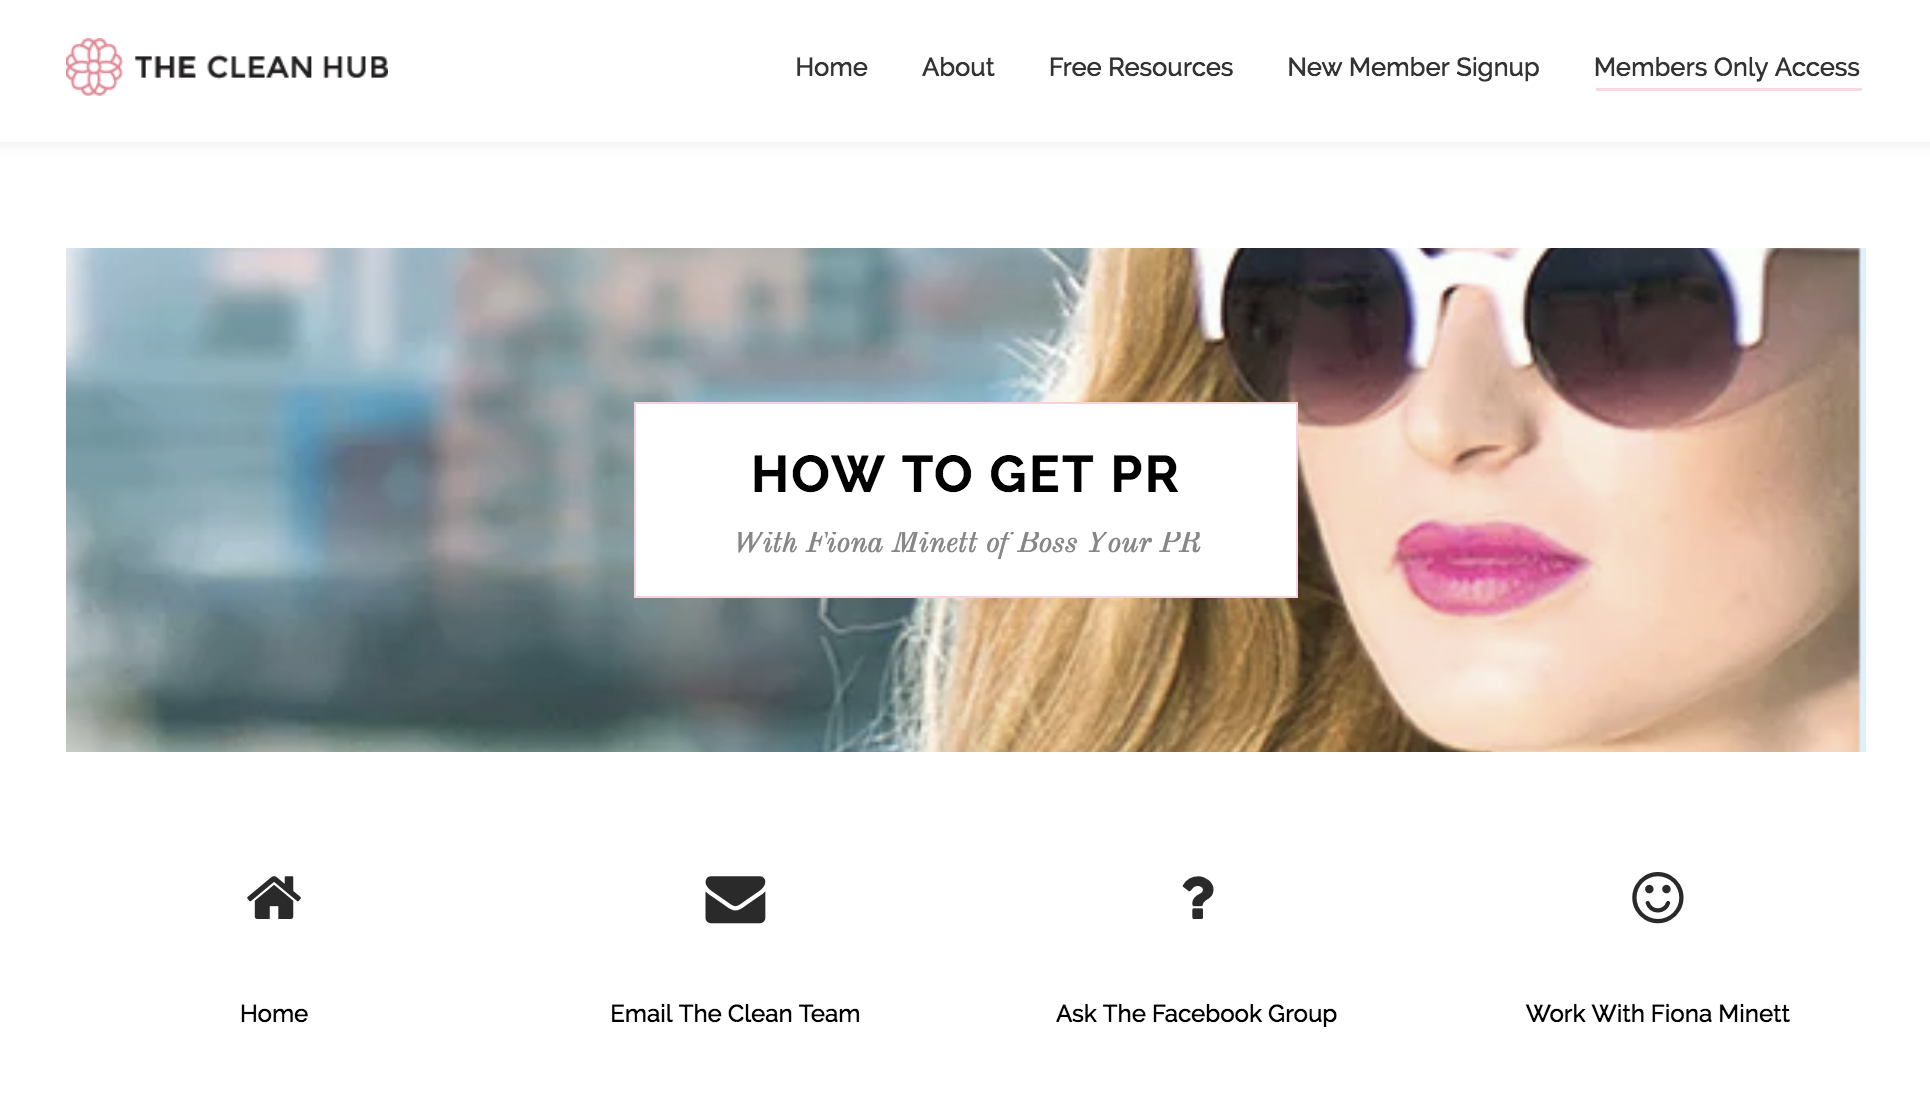 The Clean Hub - Boss Your PR 'How to'